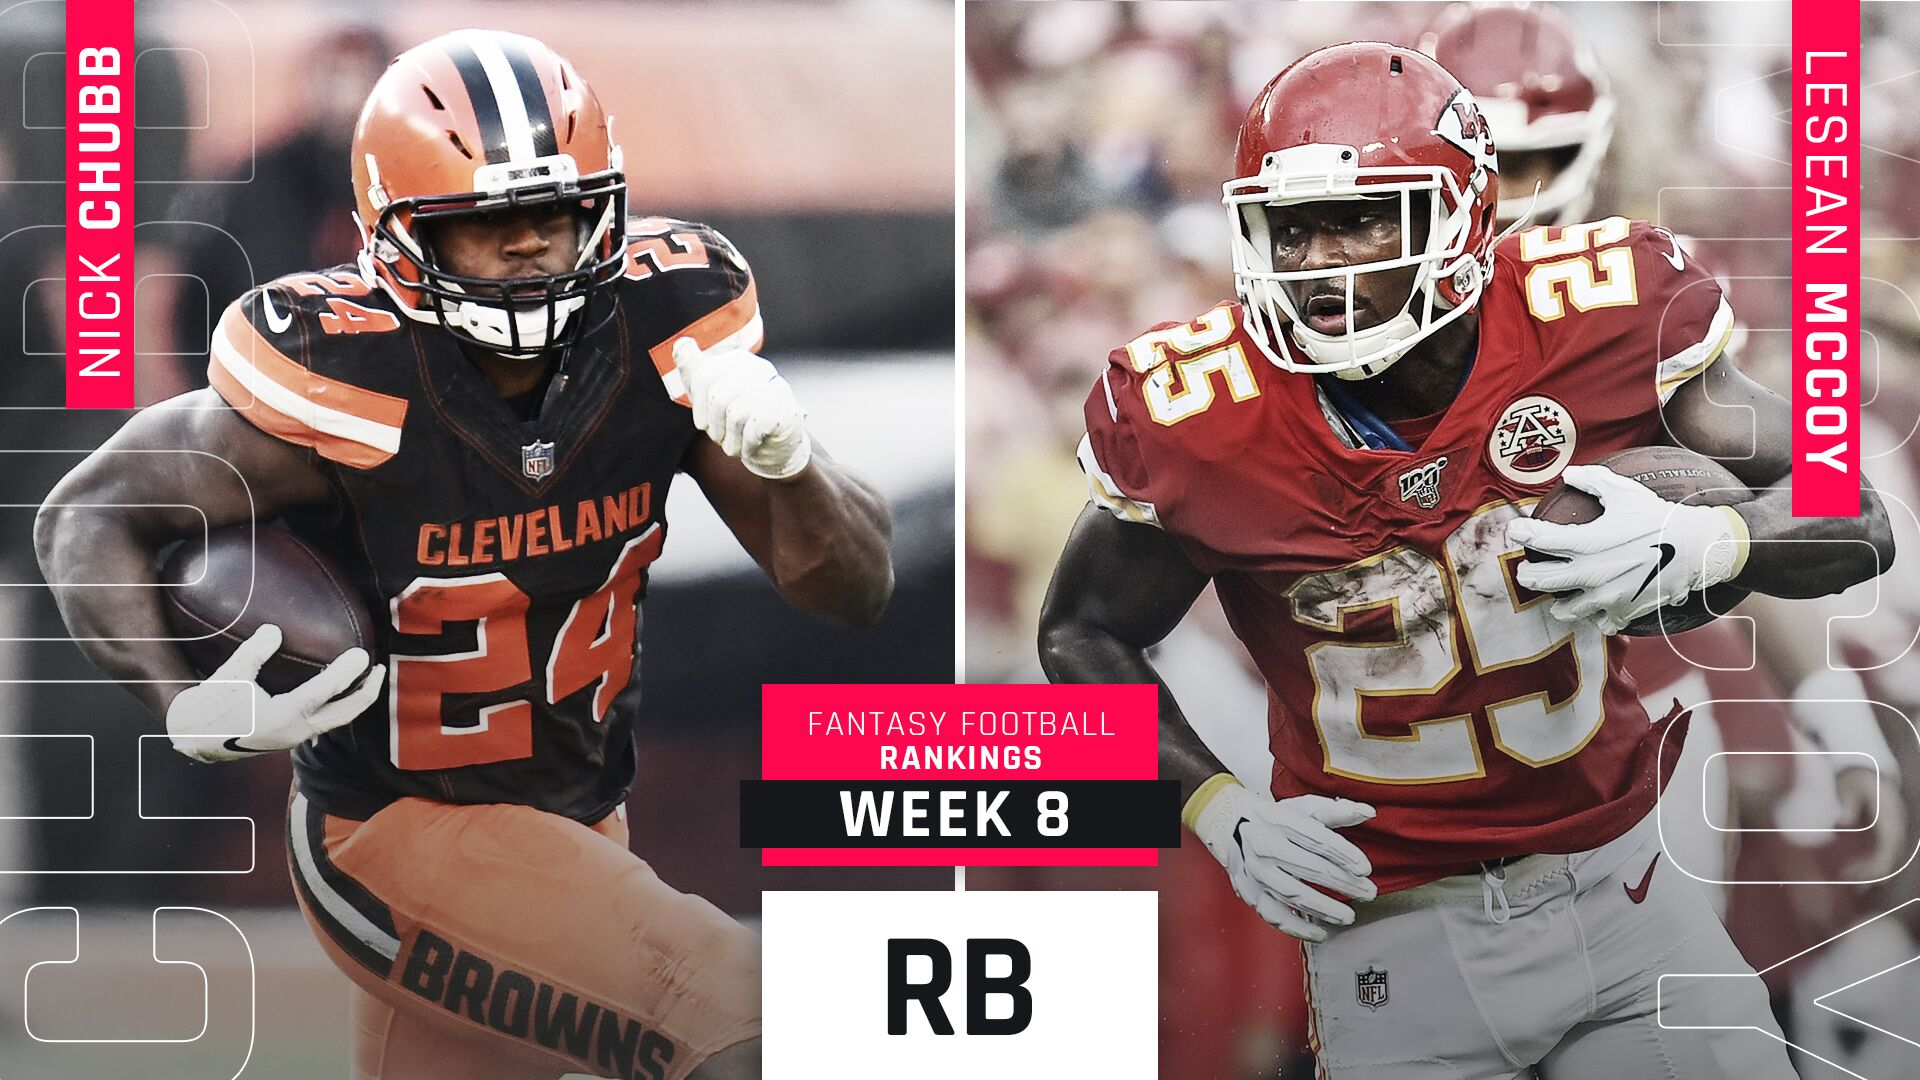 Week 8 Fantasy RB Rankings: Injuries to Alvin Kamara, David Johnson, Kerryon Johnson create questions -- and opportunities